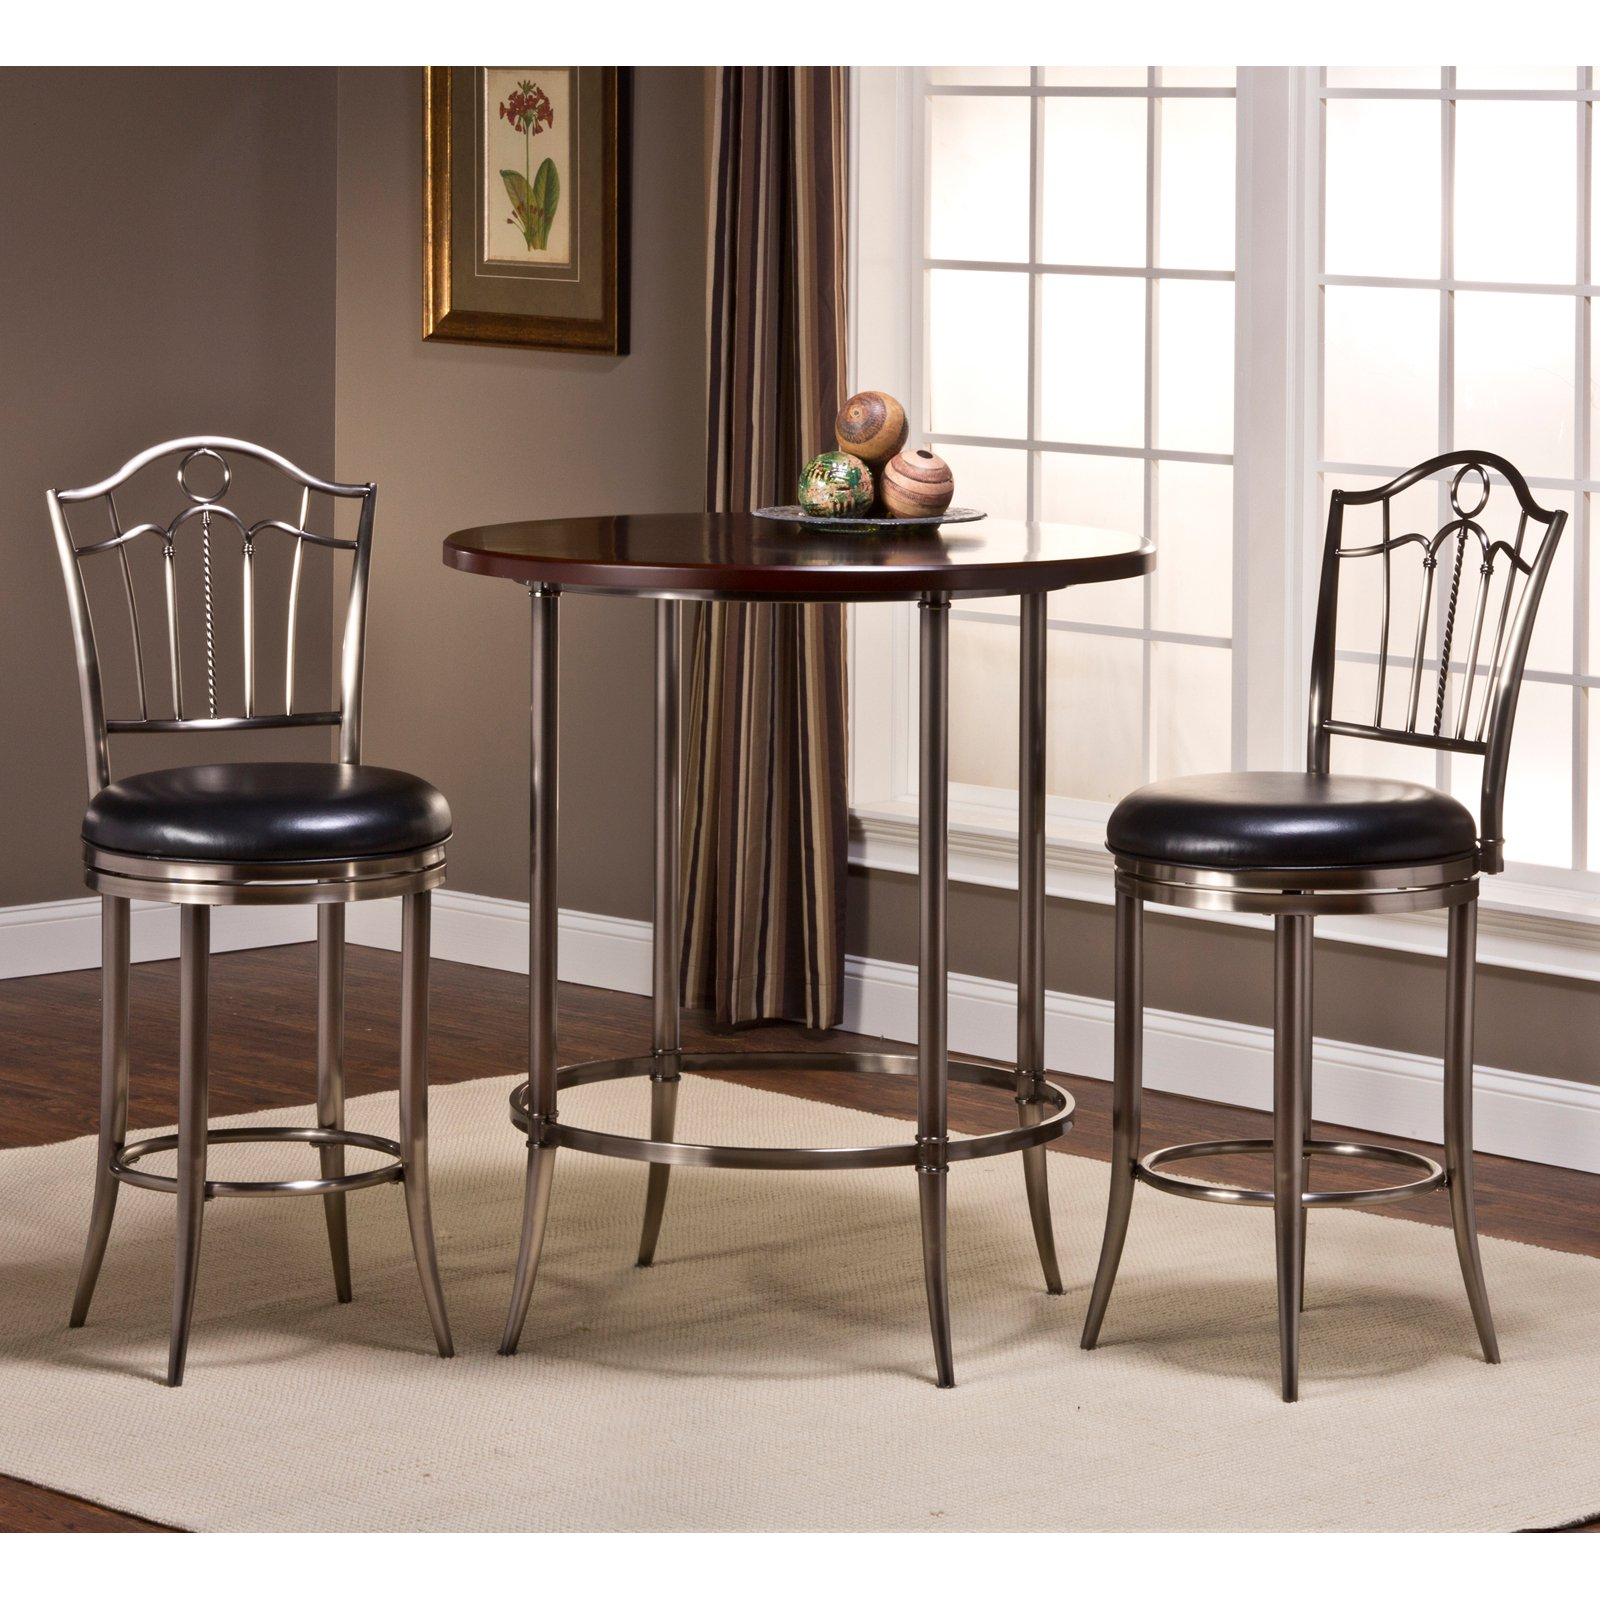 Hillsdale Maddox Bar Height Bistro Table in Espresso and Nickel